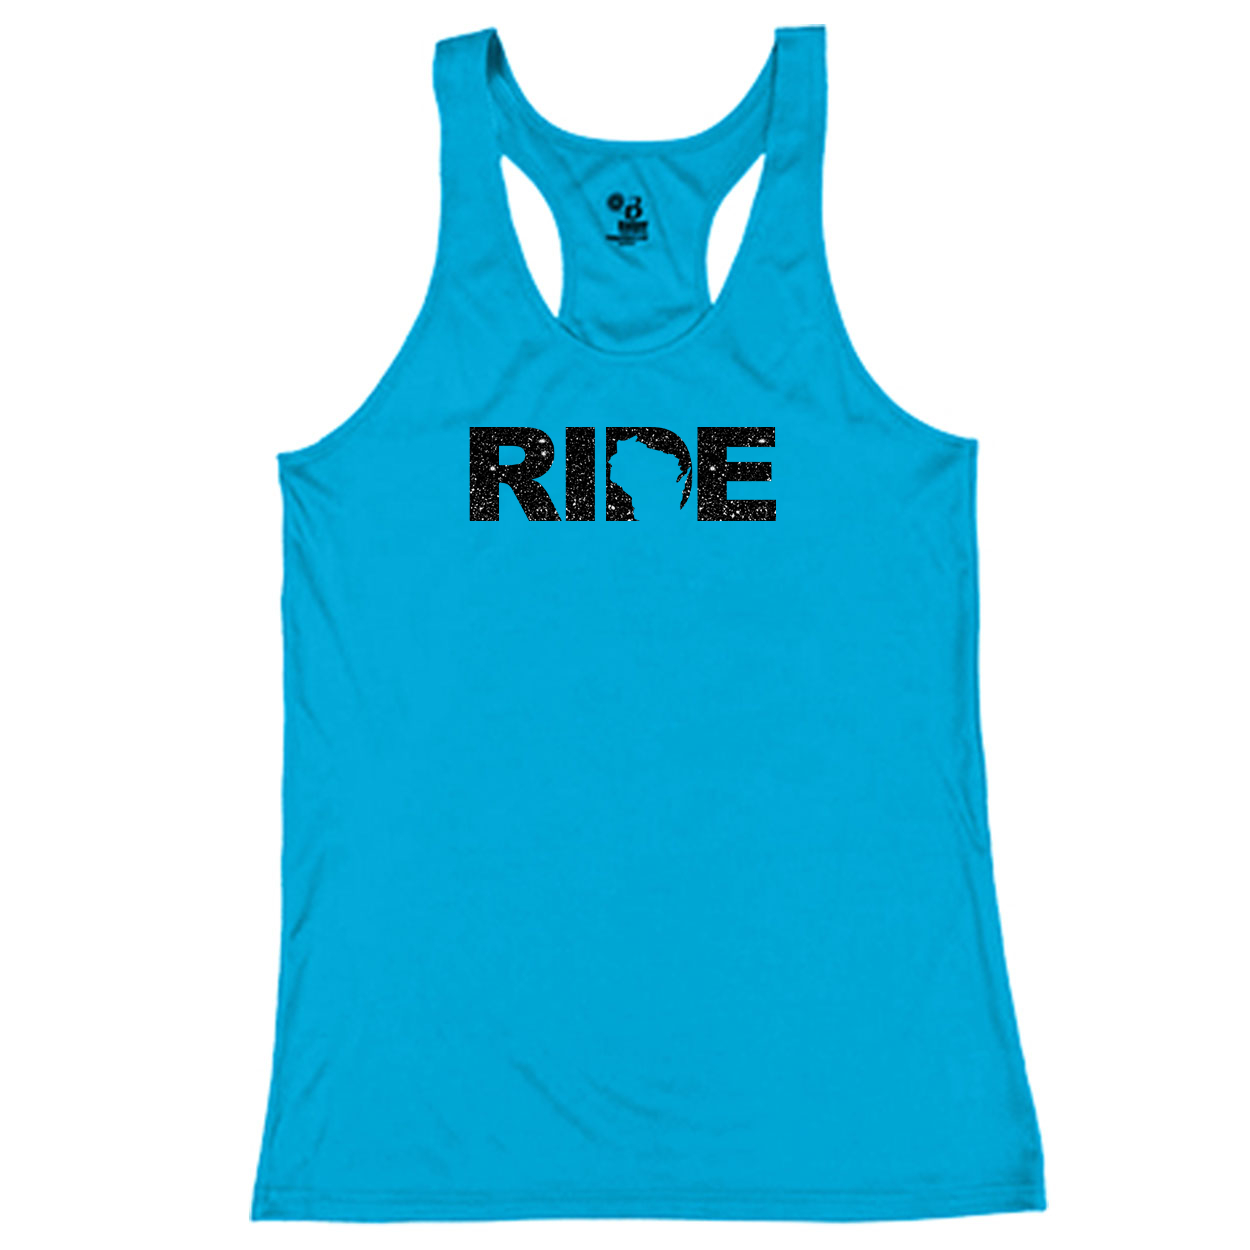 Ride Wisconsin Classic Youth Girls Performance Racerback Tank Top Electric Blue (Glitter Black Logo)